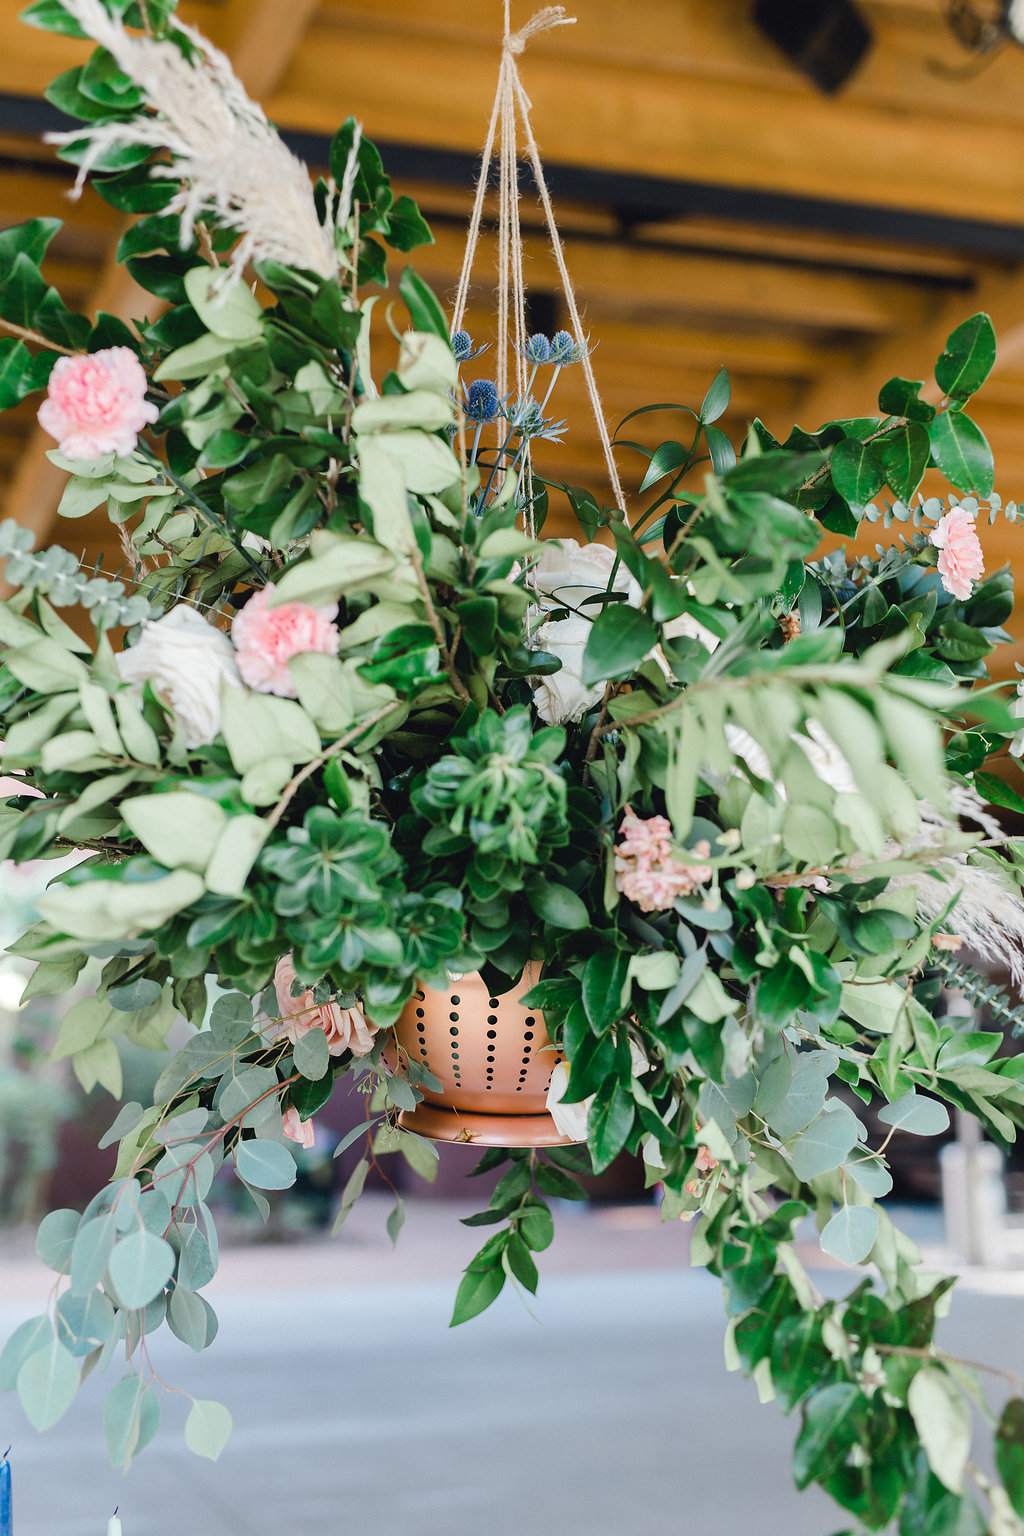 ships-of-the-sea-wedding-ivory-and-beau-savannah-florist-savannah-wedding-inspiration-savannah-wedding-planner-savannah-event-designer-hanging-centerpiece-wedding-inspiration.JPG